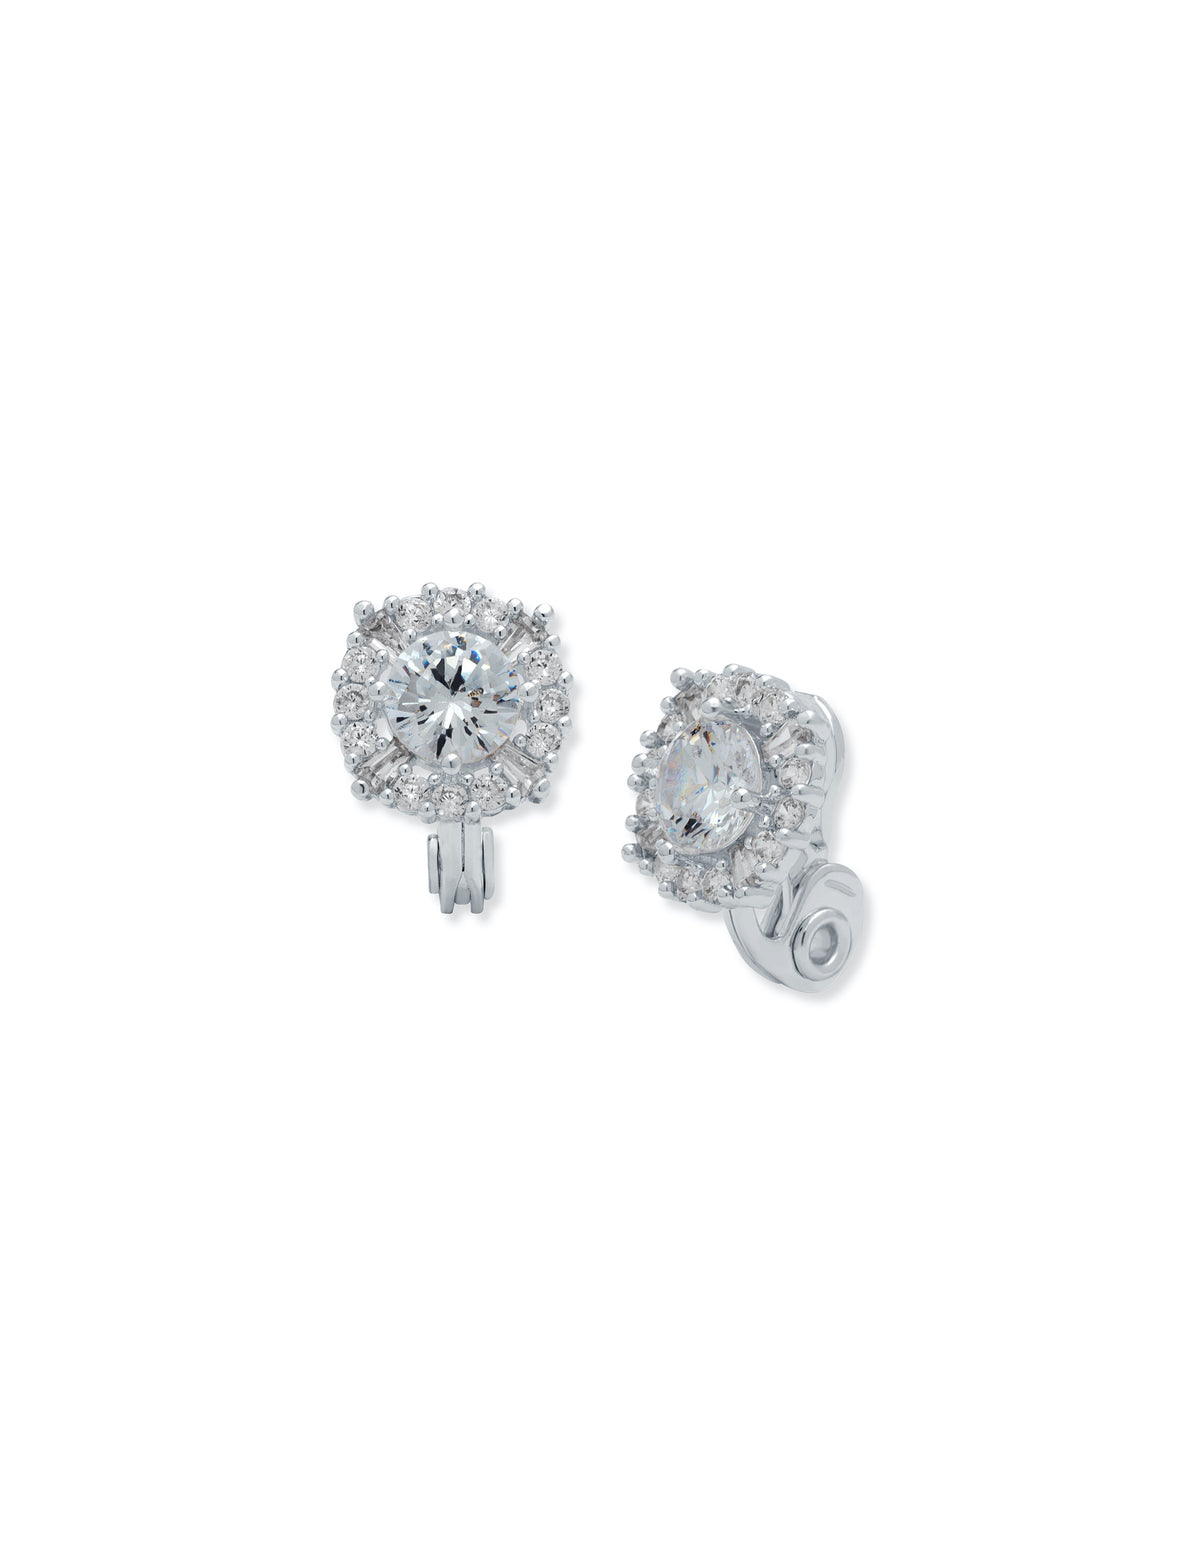 Silver-Tone Crystal Pave Clip Earrings